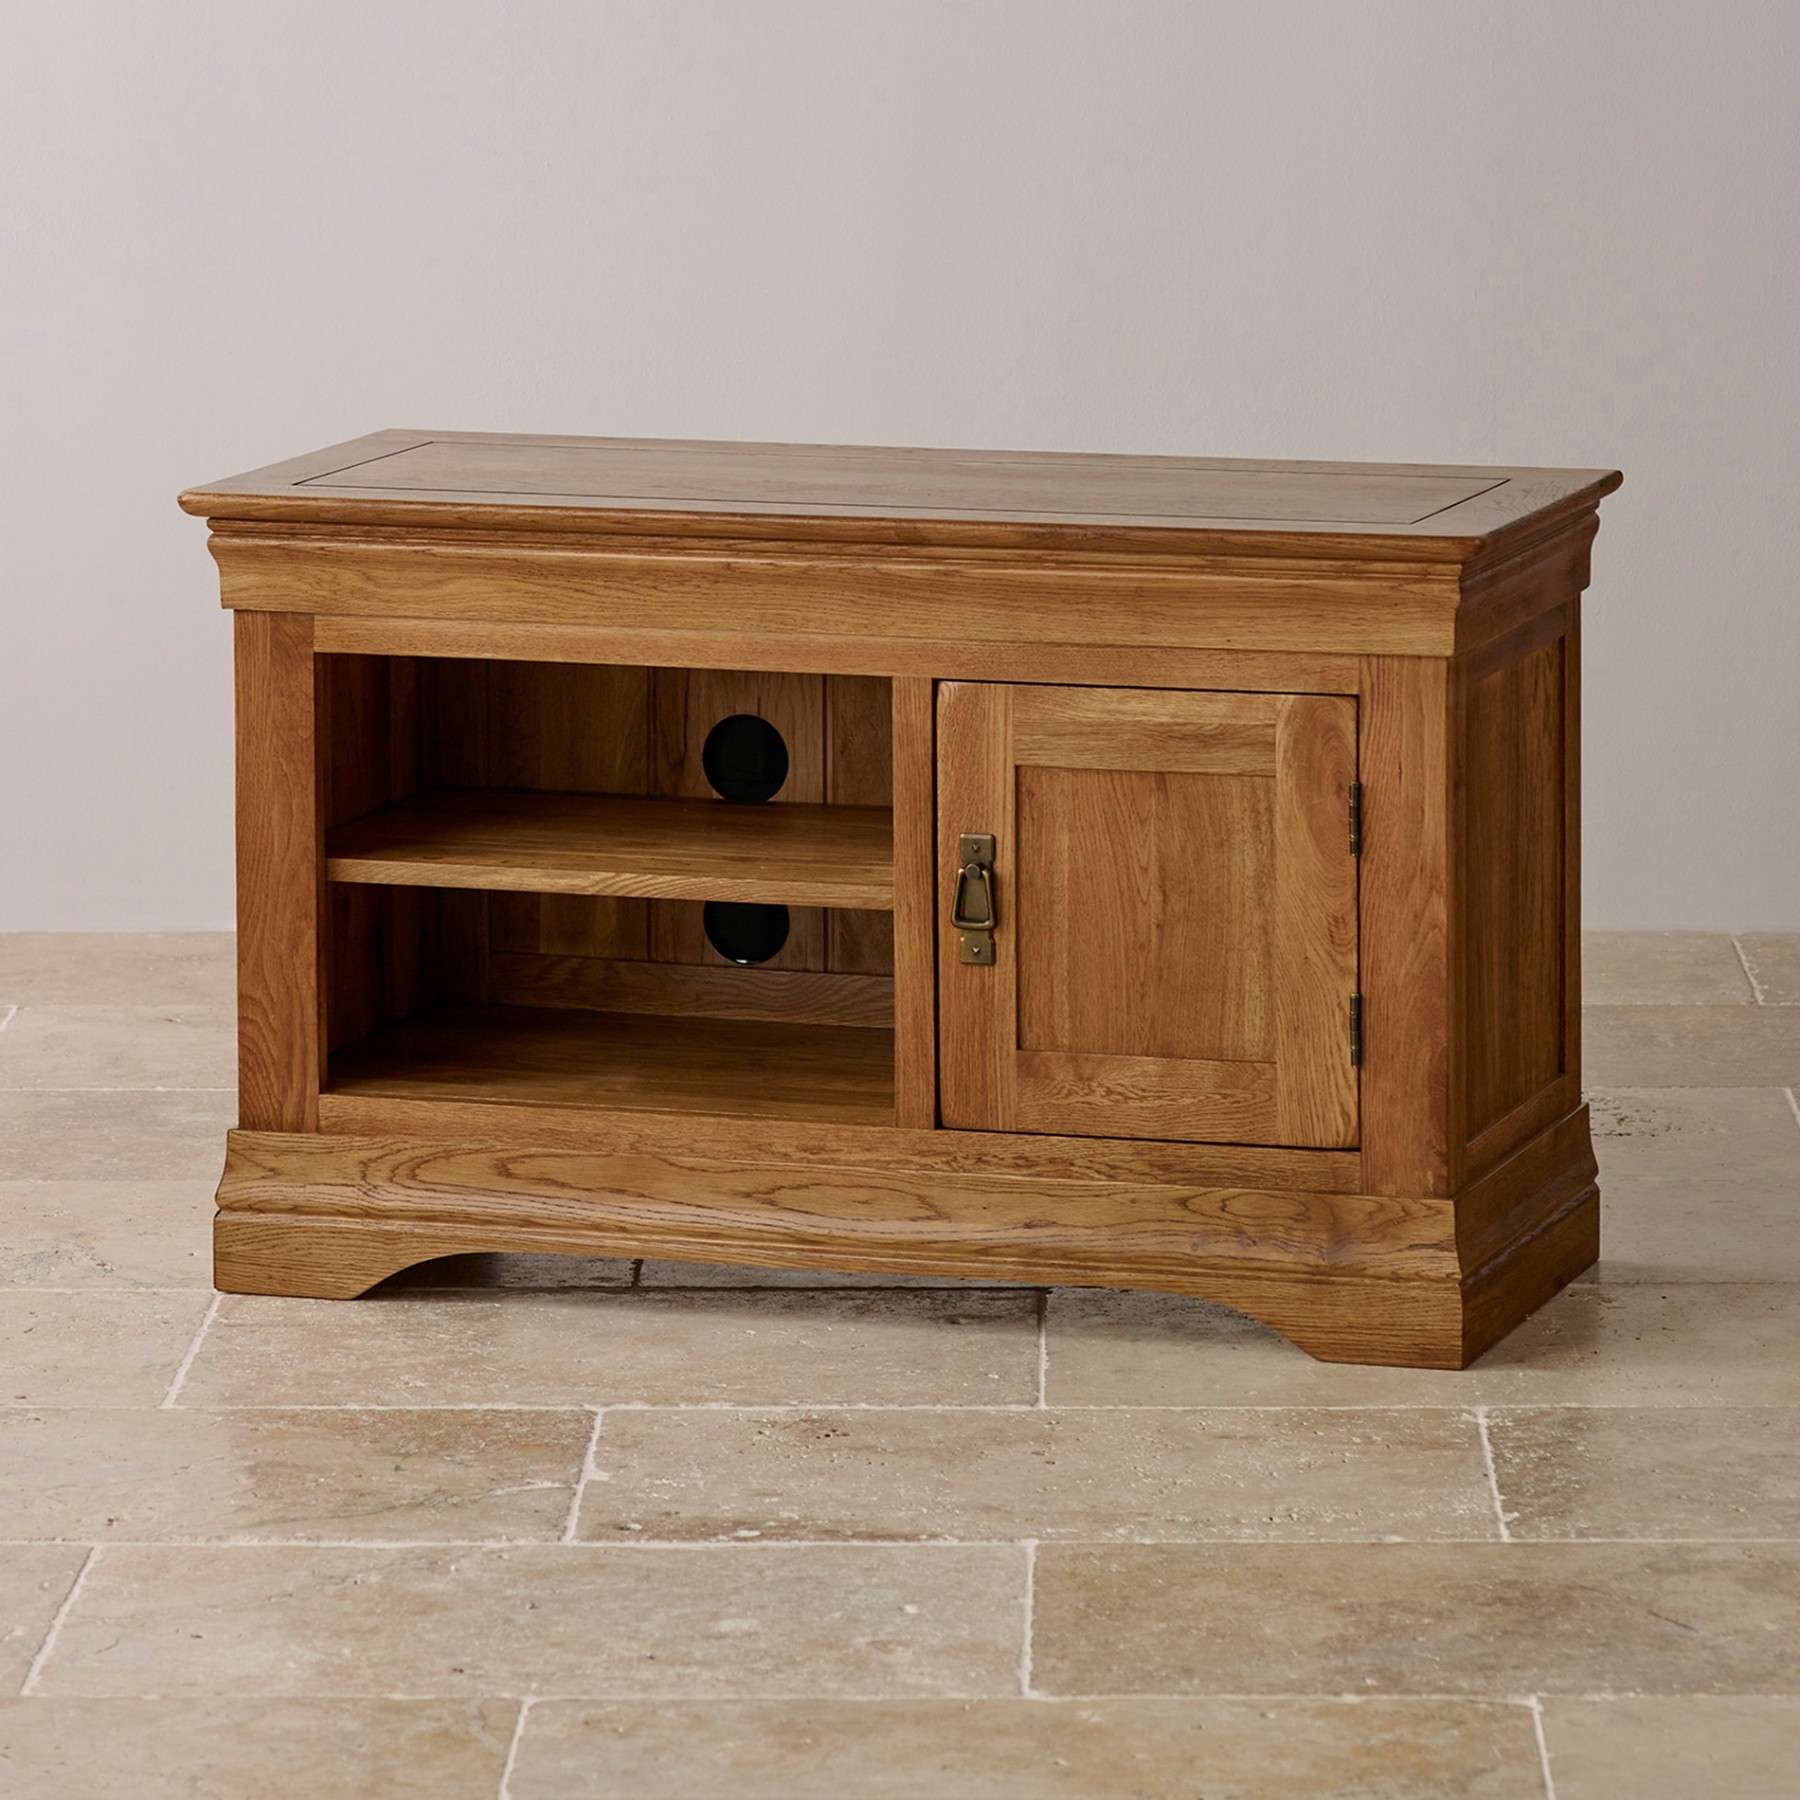 French Farmhouse Rustic Solid Oak Small Tv Stand Oak Furniture Land Intended For Rustic Oak Tv Stands (View 5 of 15)